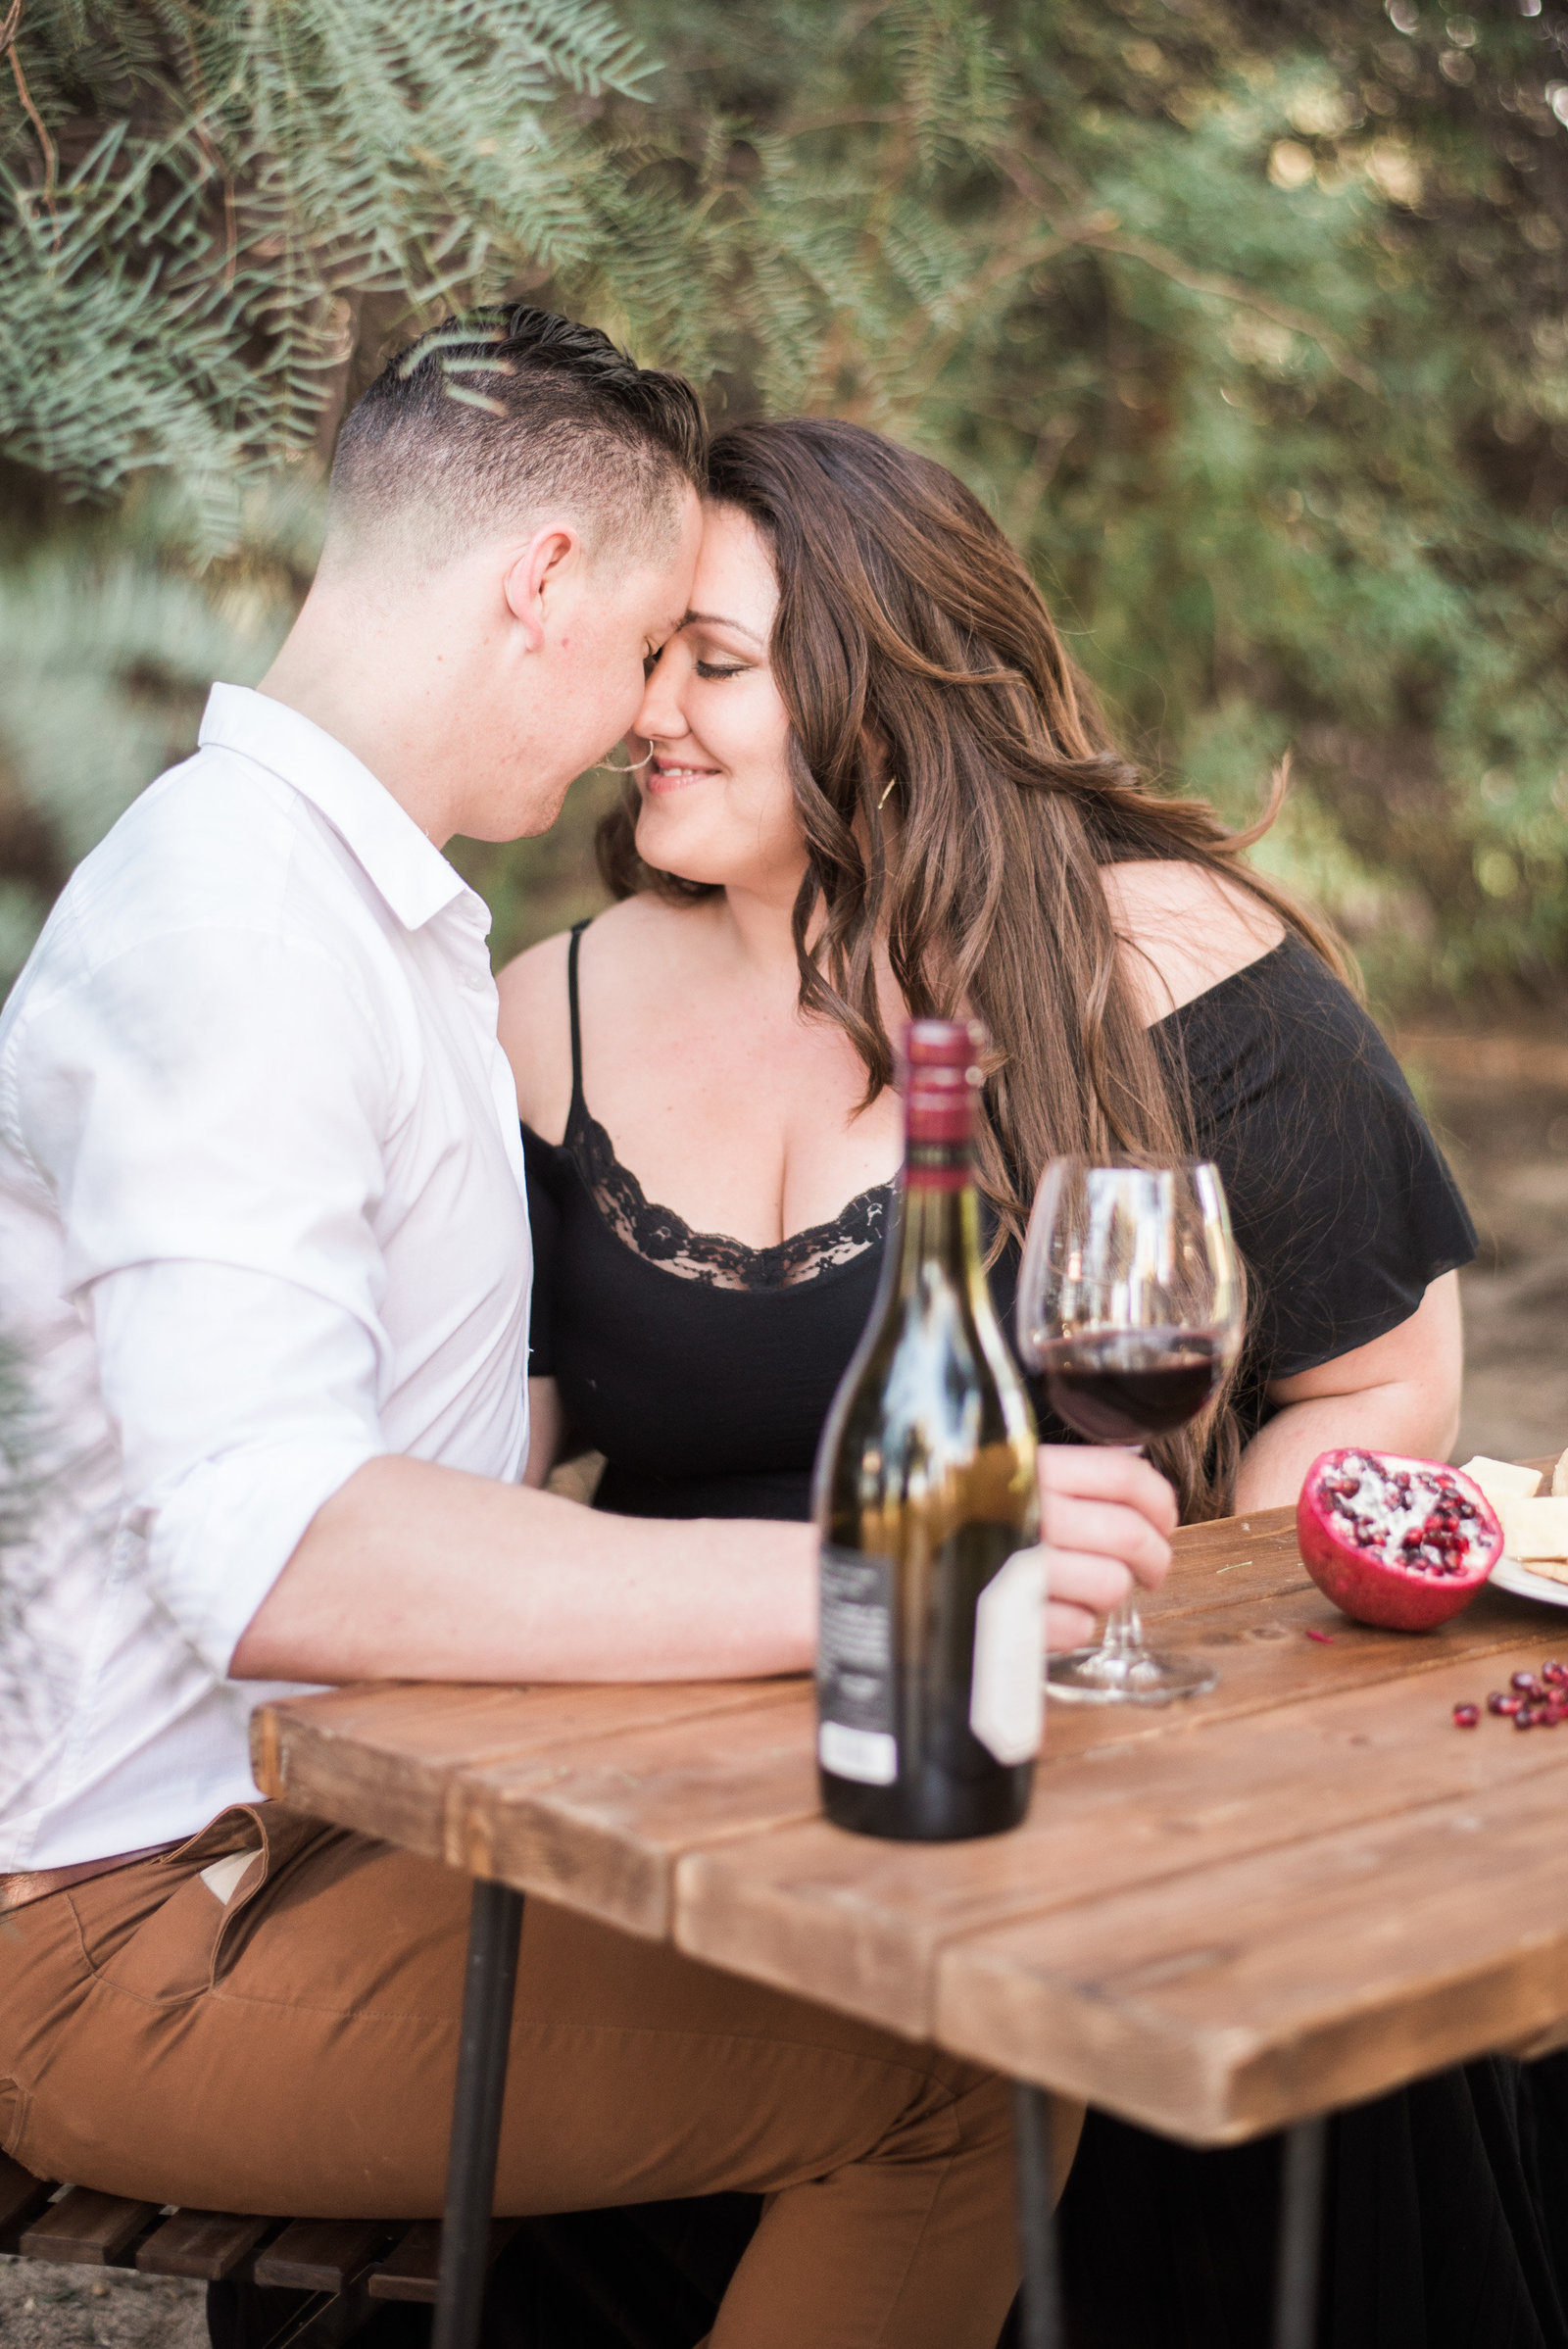 Romantic engagement session photo of couple during dinner and wine